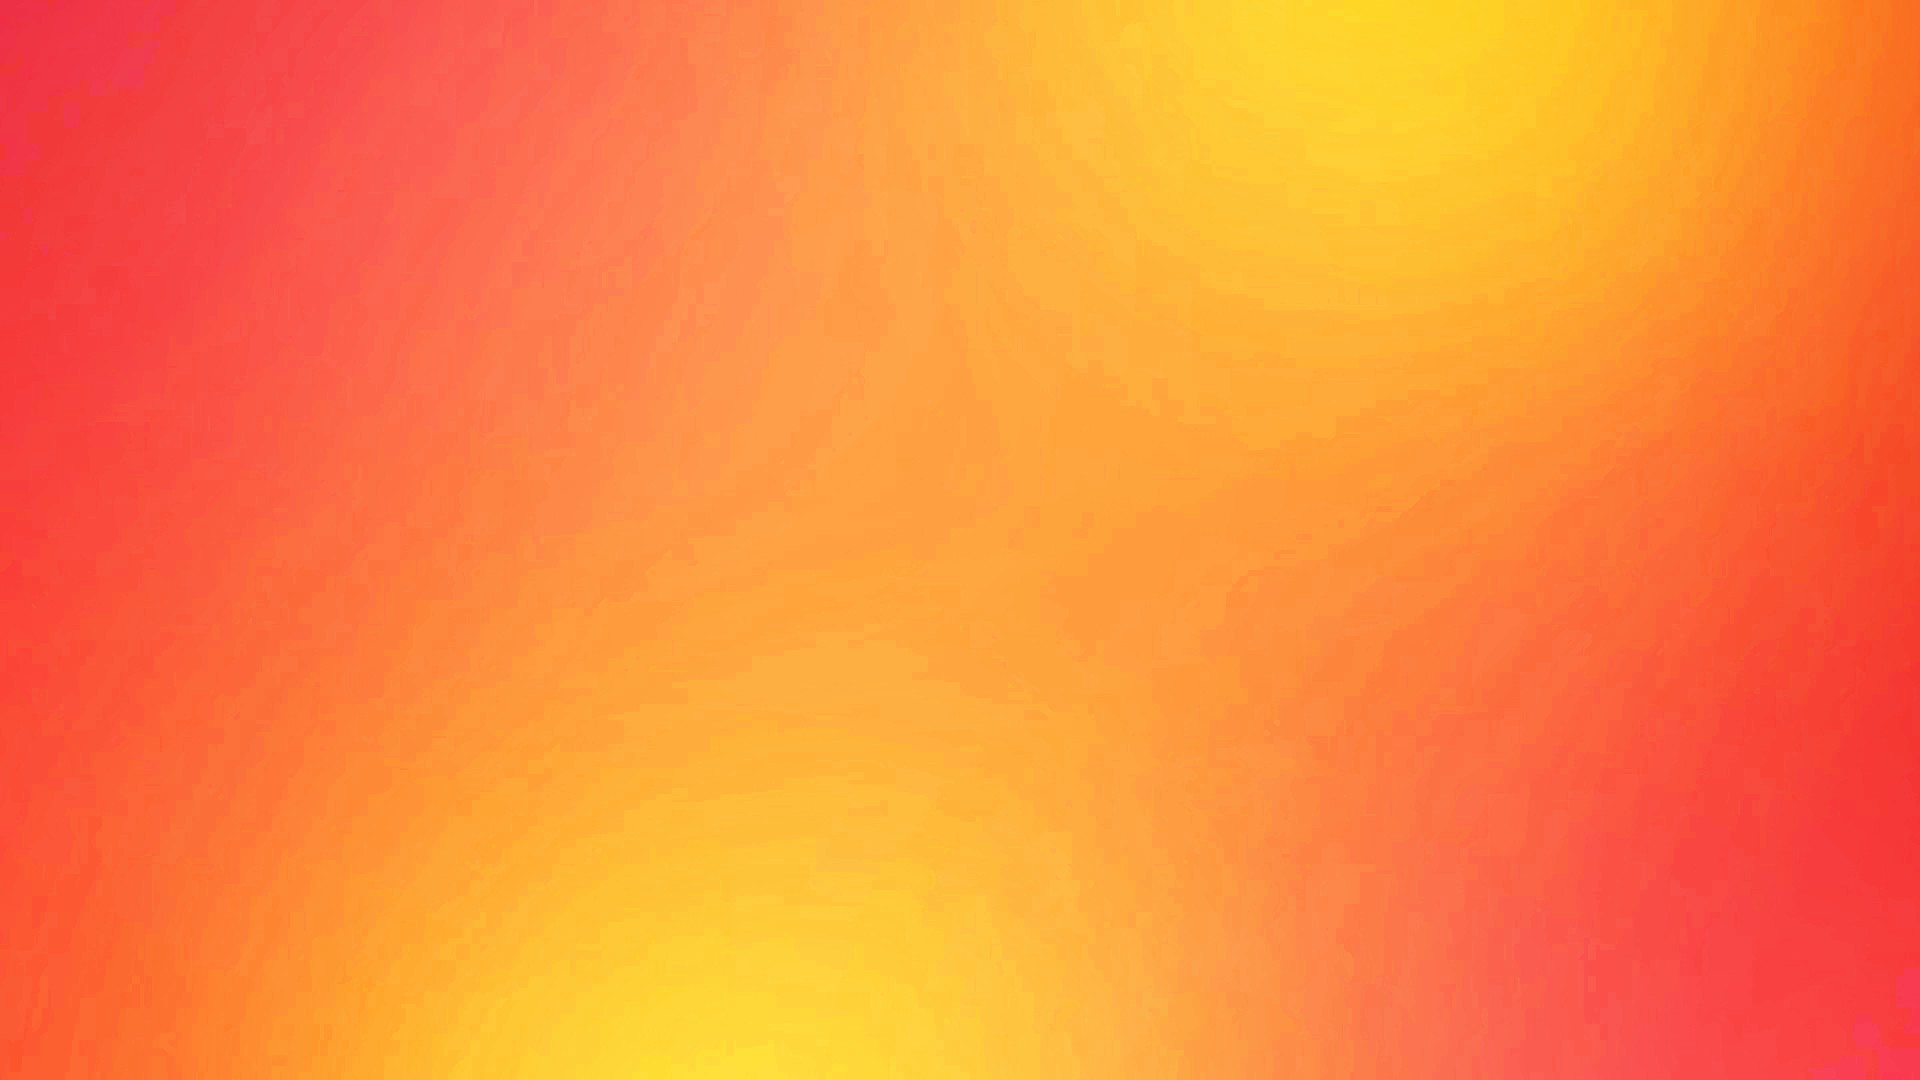 Yellow Color Combination Pink And Yellow Gradient Abstract Wallpaper Free Images